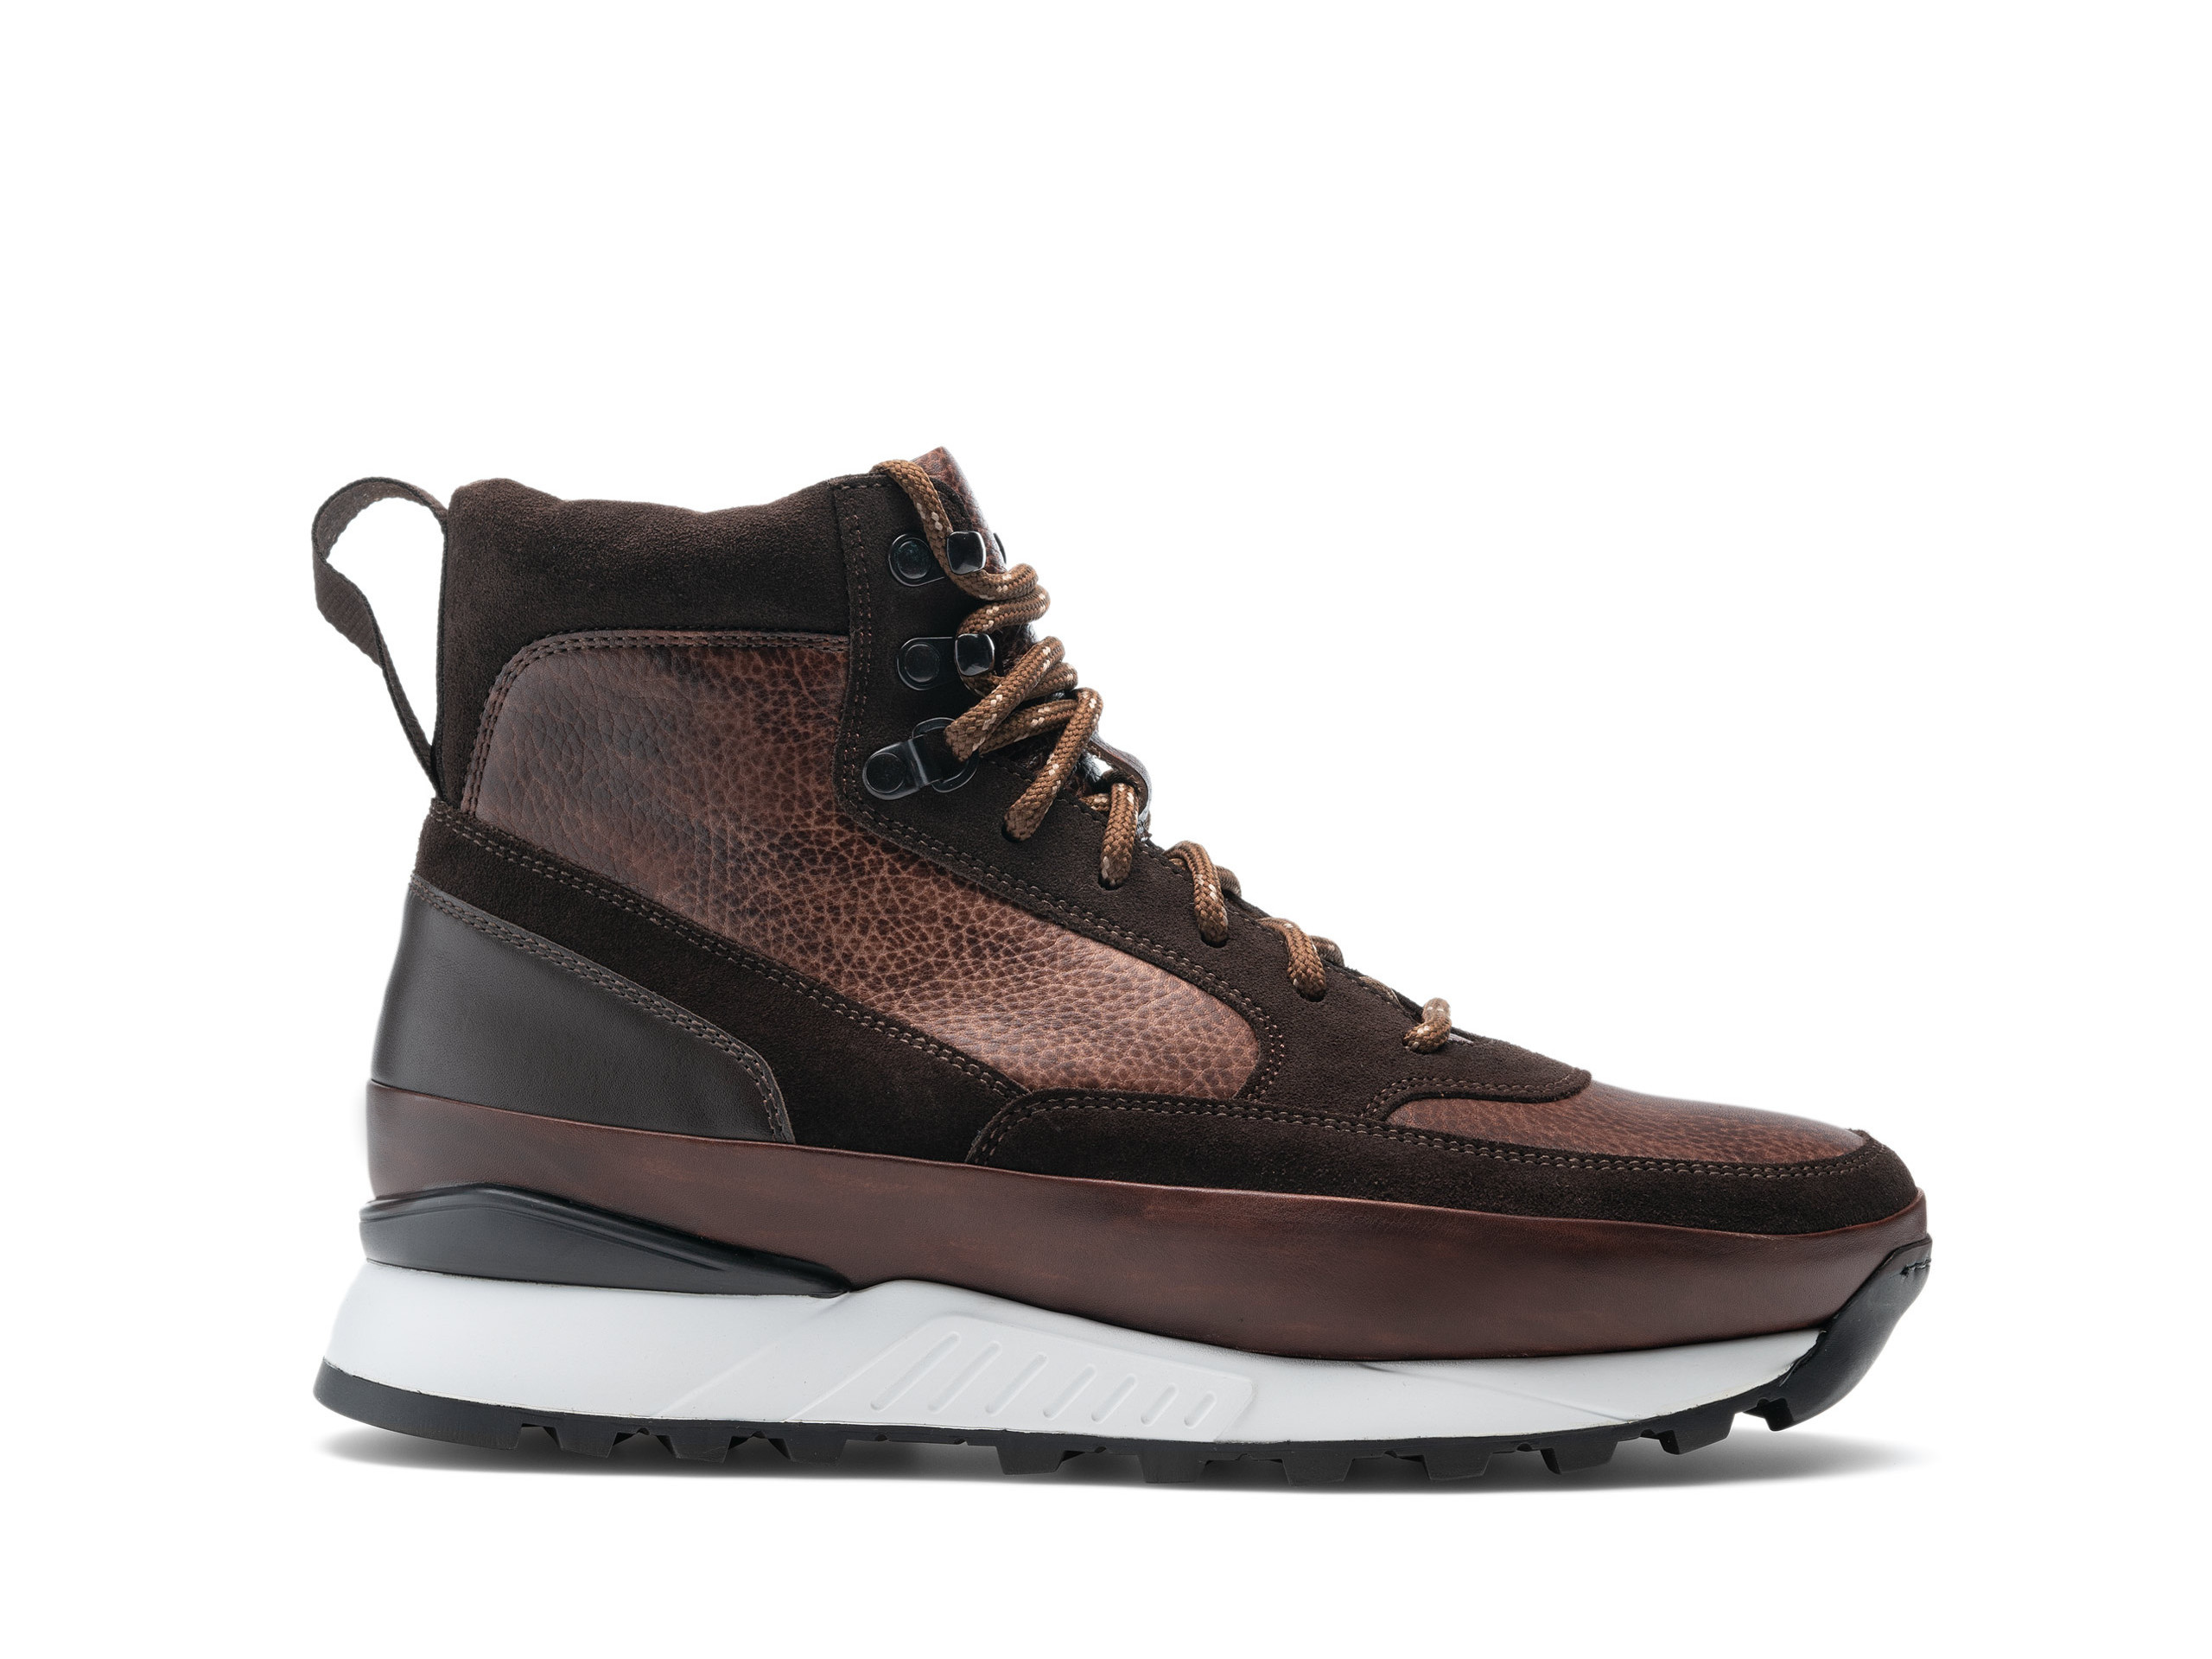 Side view of the Magnanni Bodhi Brown Boots